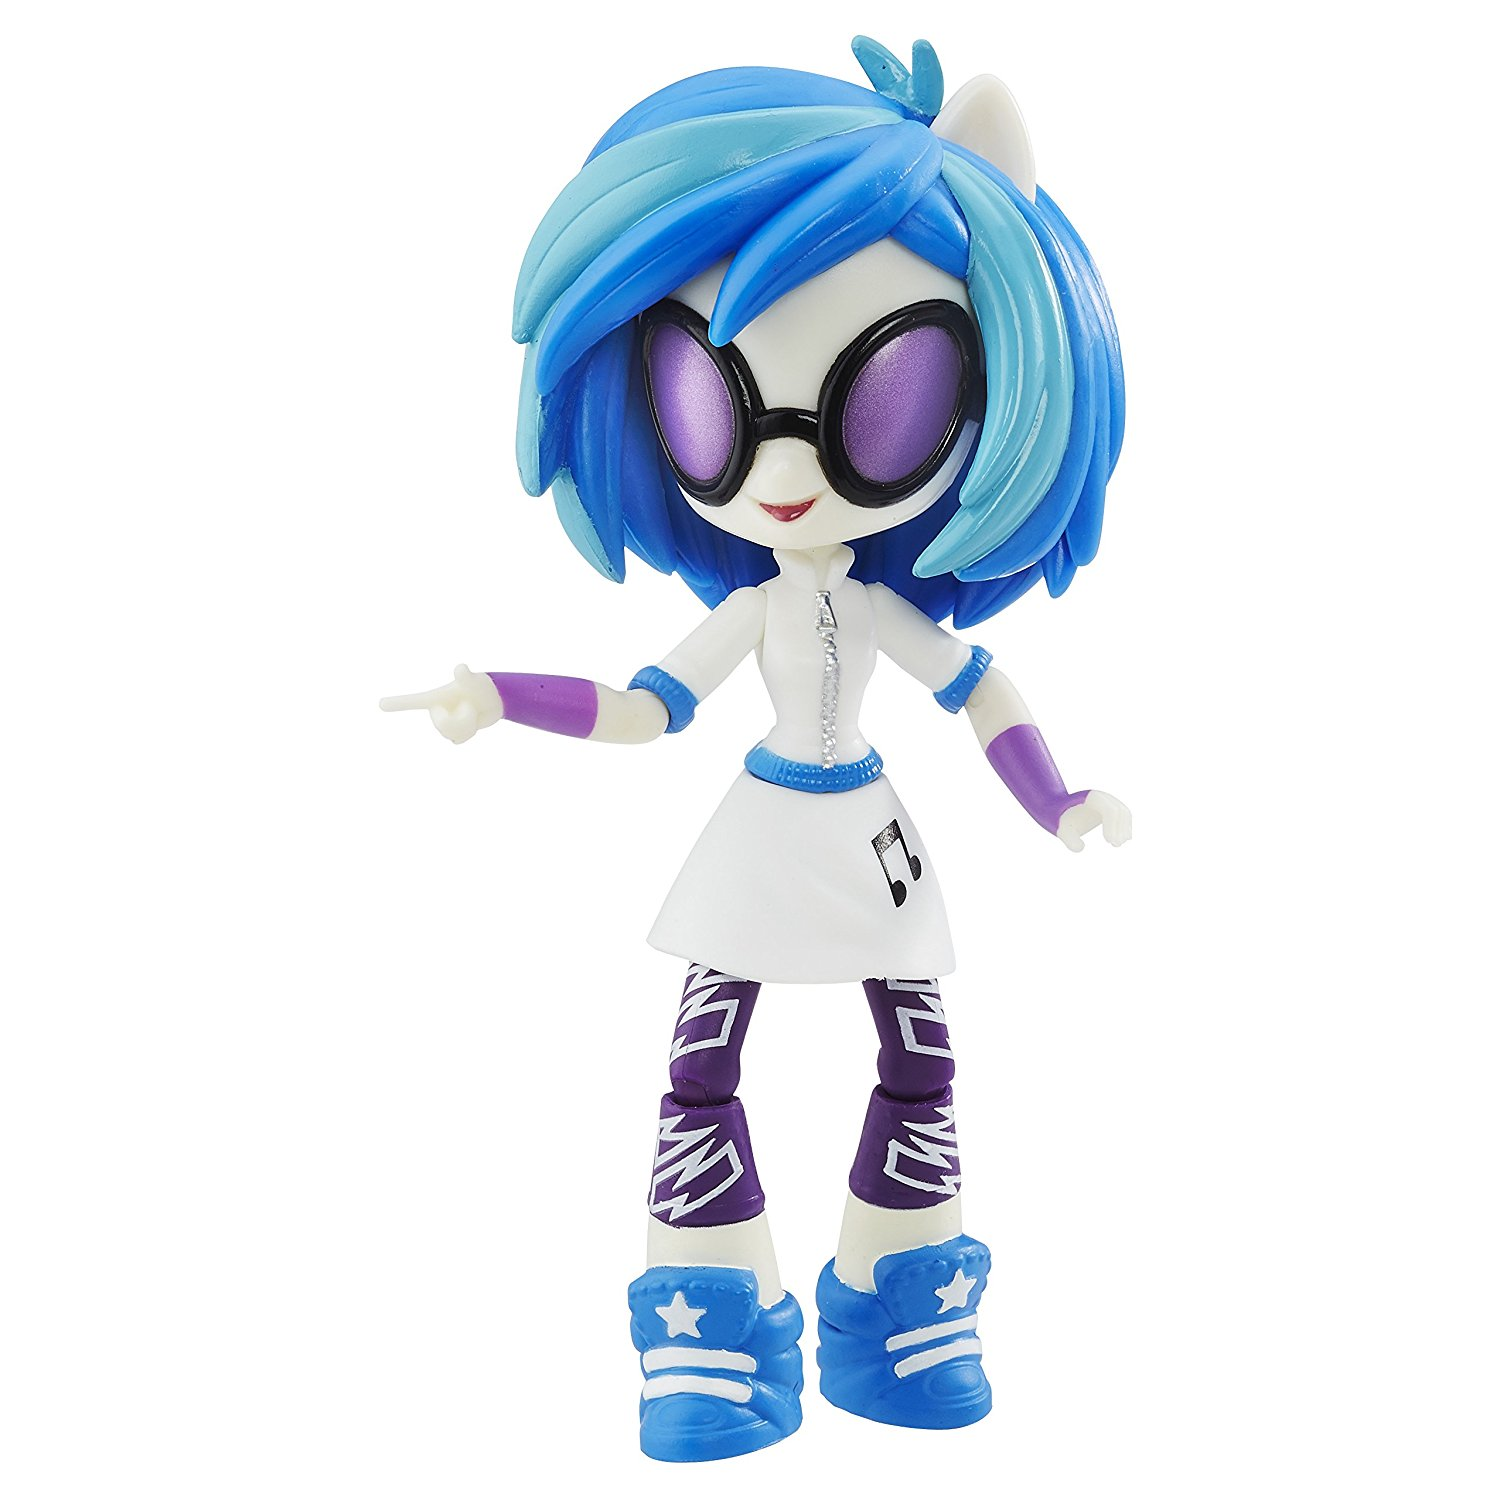 Equestria Girls Minis School Dance DJ Pon-3..., By My Little Pony Ship from US by